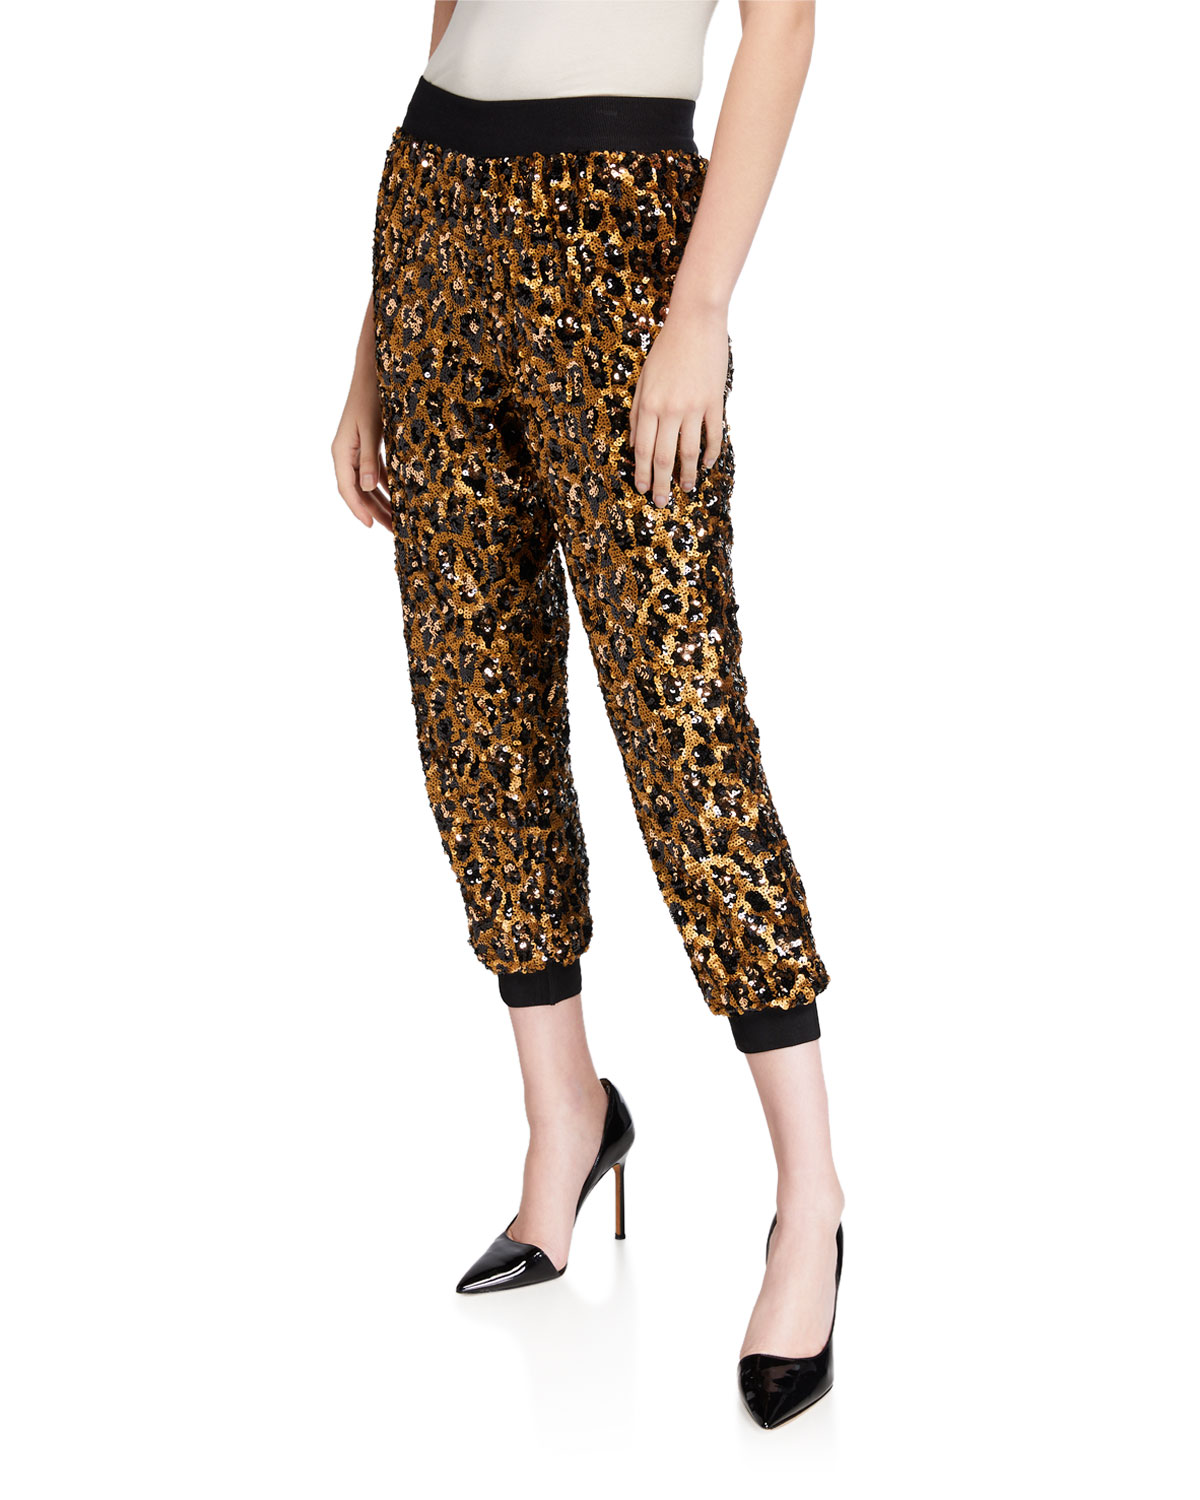 Pete Sequined Sweatpants by Alice + Olivia